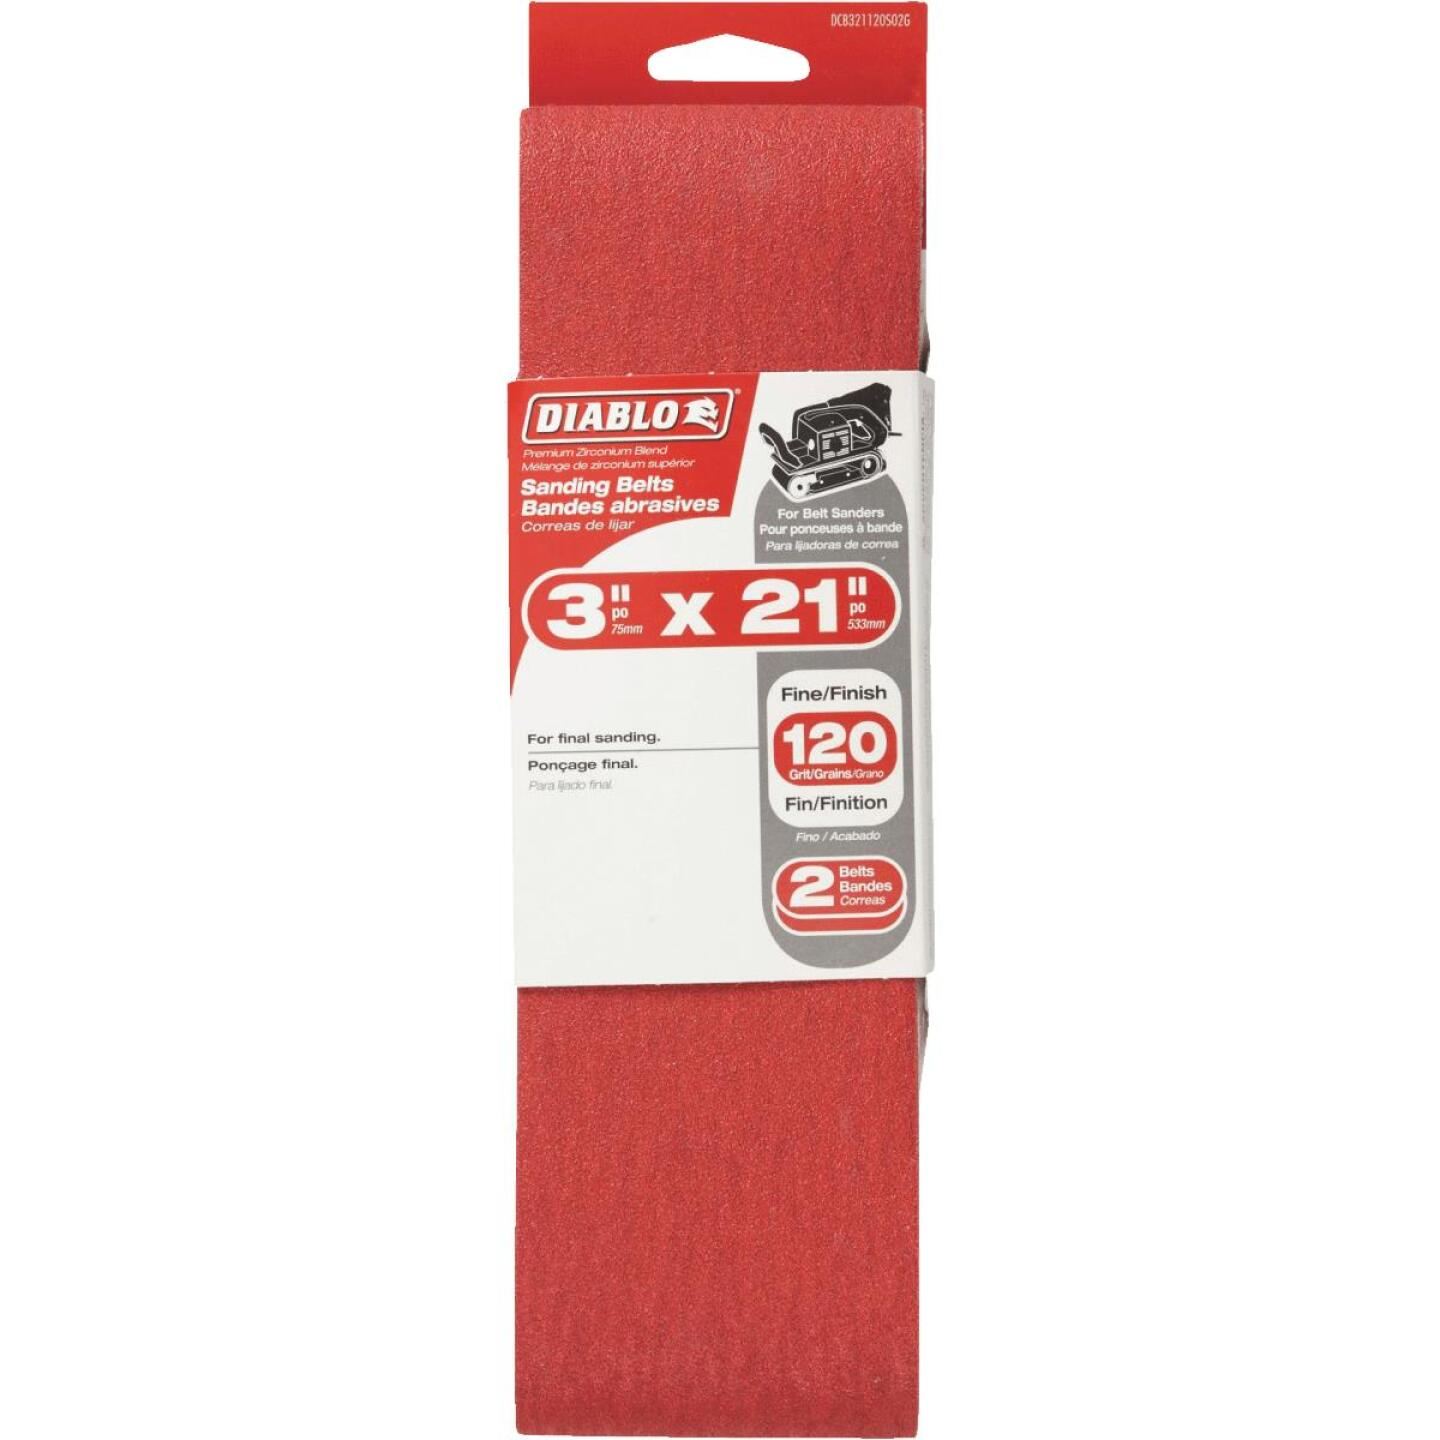 Diablo 3 In. x 21 In. 120 Grit General Purpose Sanding Belt (2-Pack) Image 1